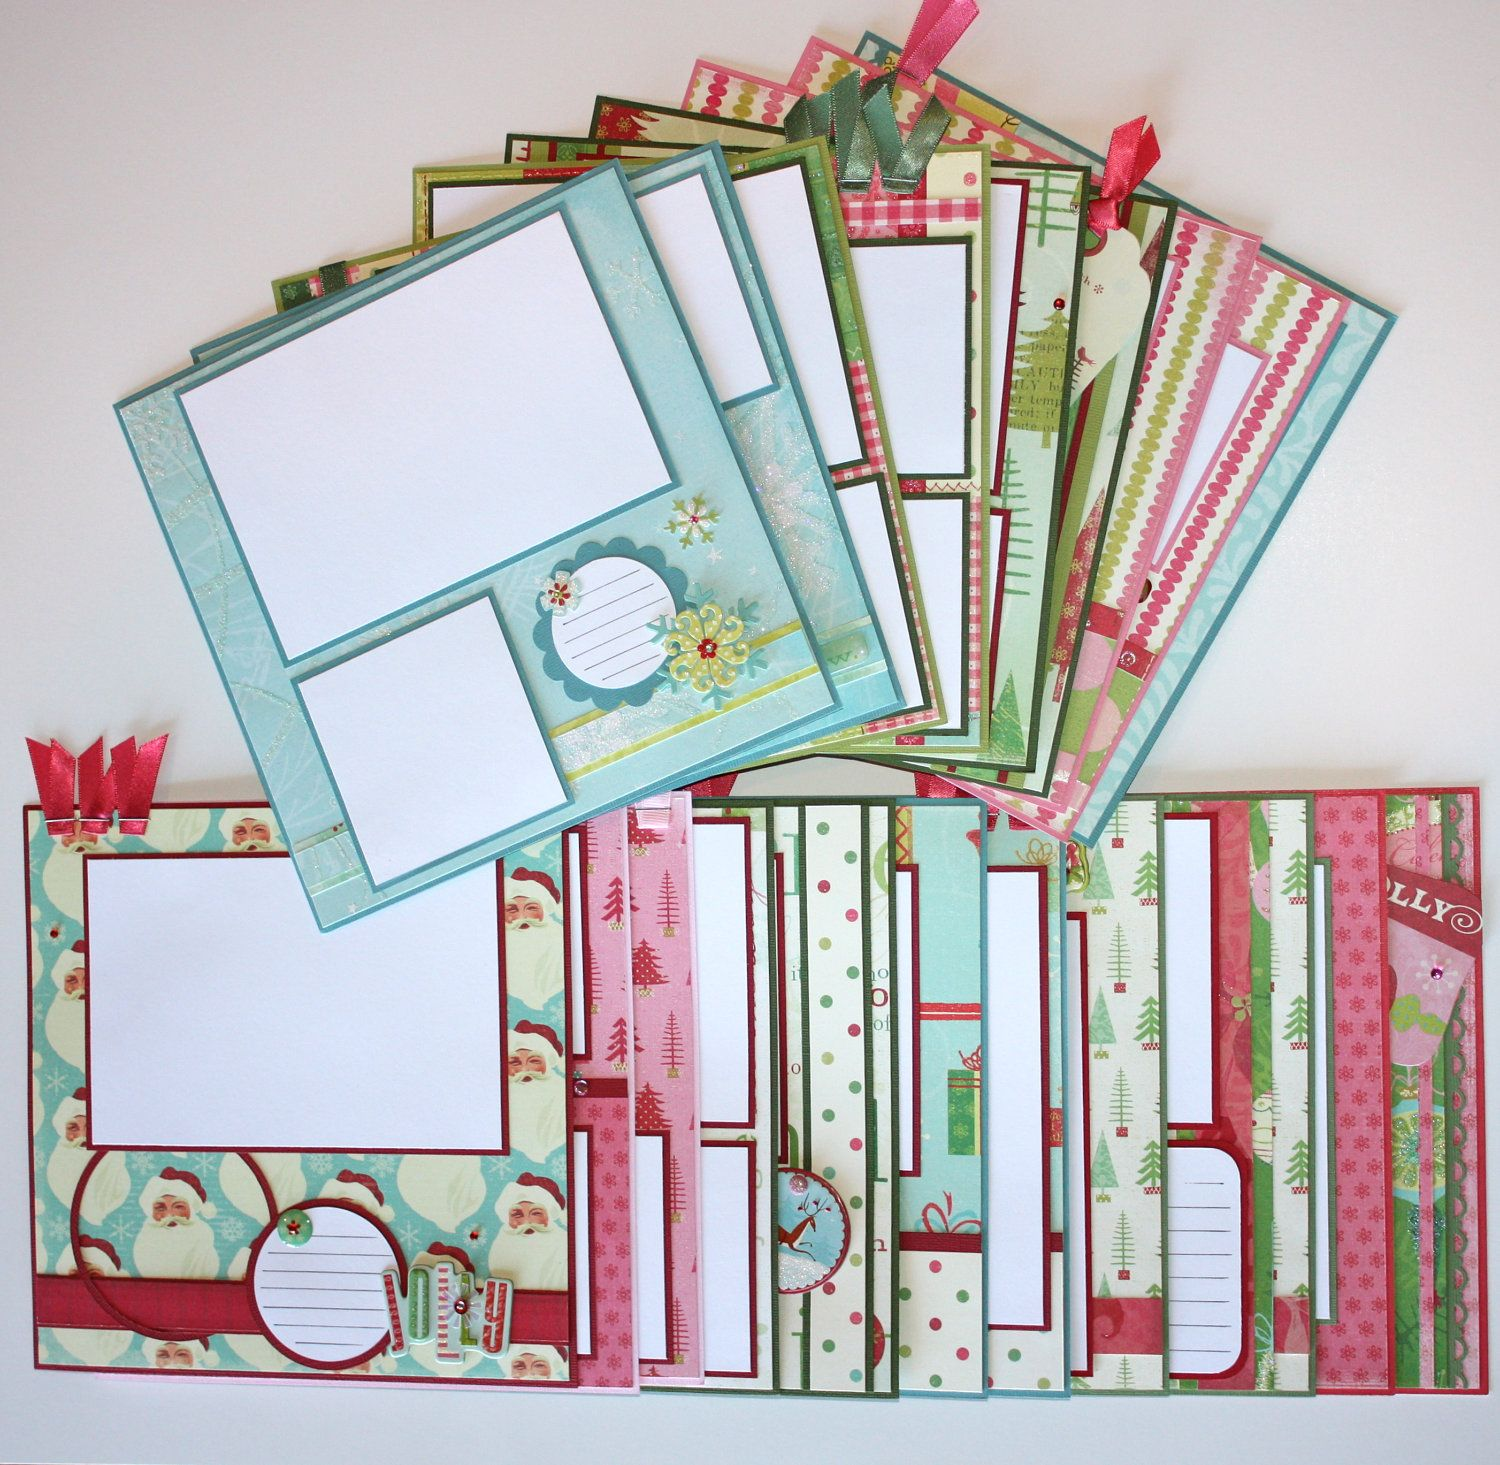 How to scrapbook 8x8 layouts - Christmas Through The Years 8 X 8 Premade Scrapbook Page Layouts 20 90 00